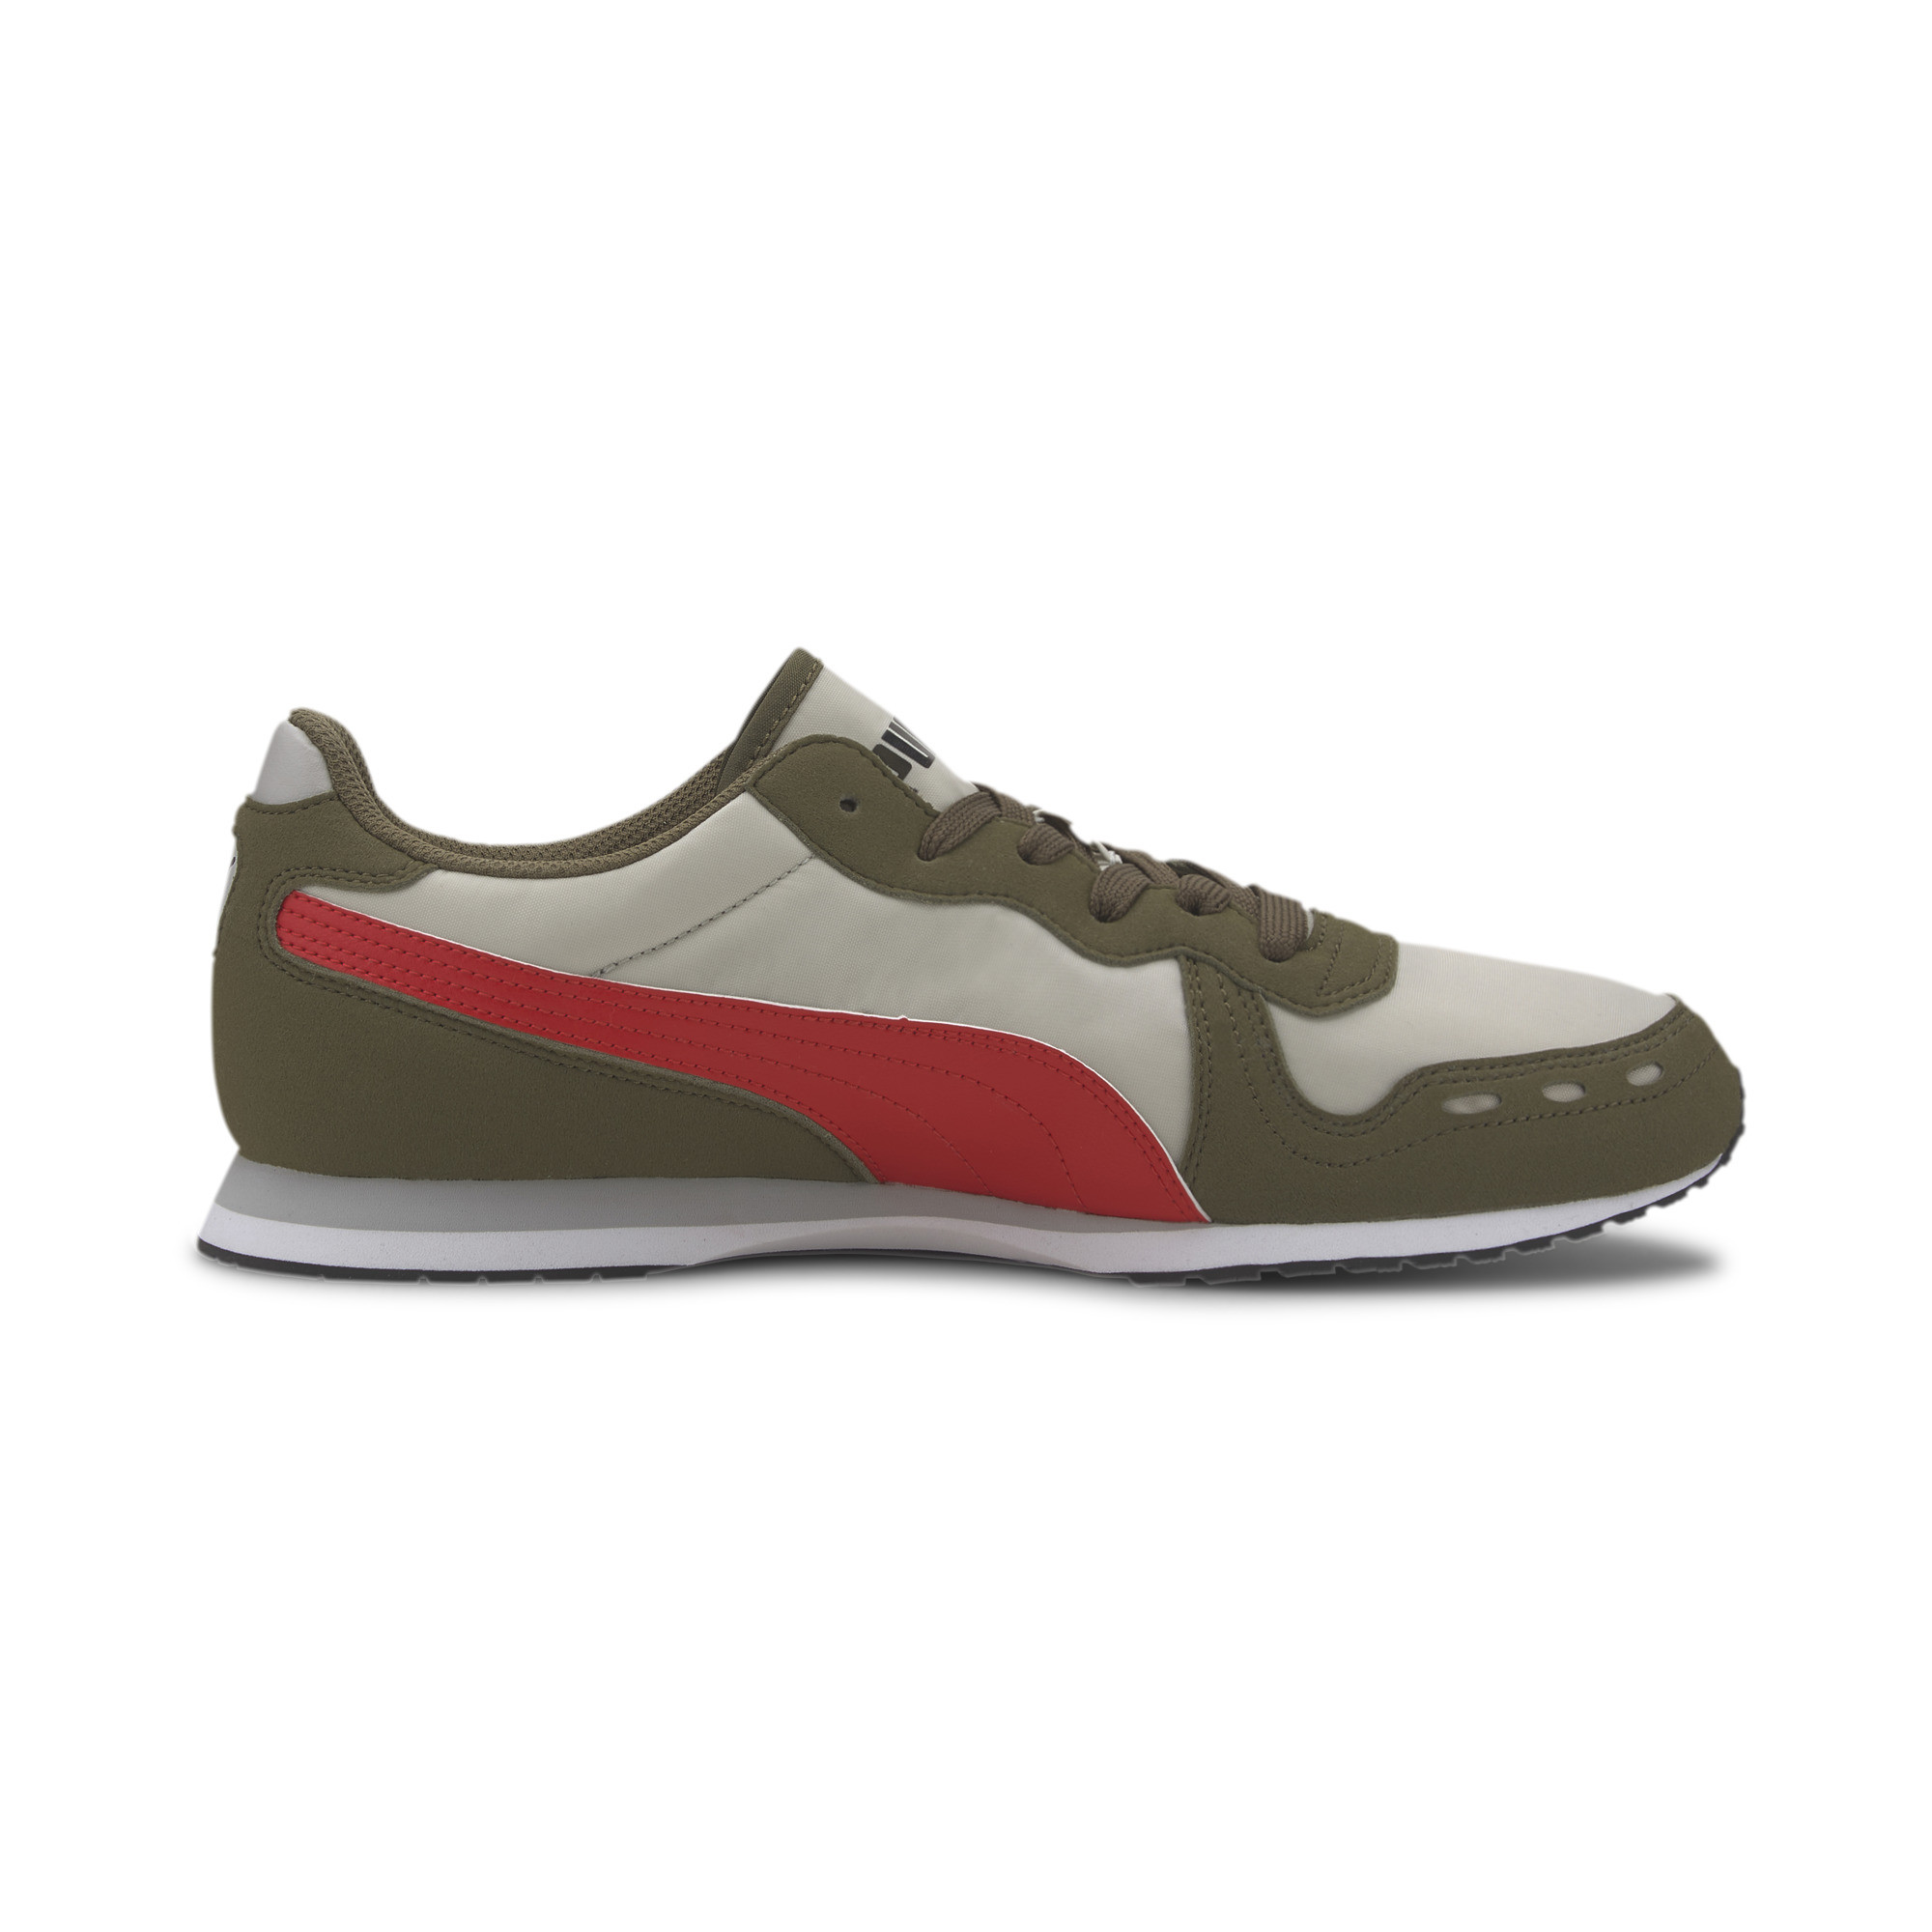 PUMA-Men-039-s-Cabana-Run-Sneakers thumbnail 22